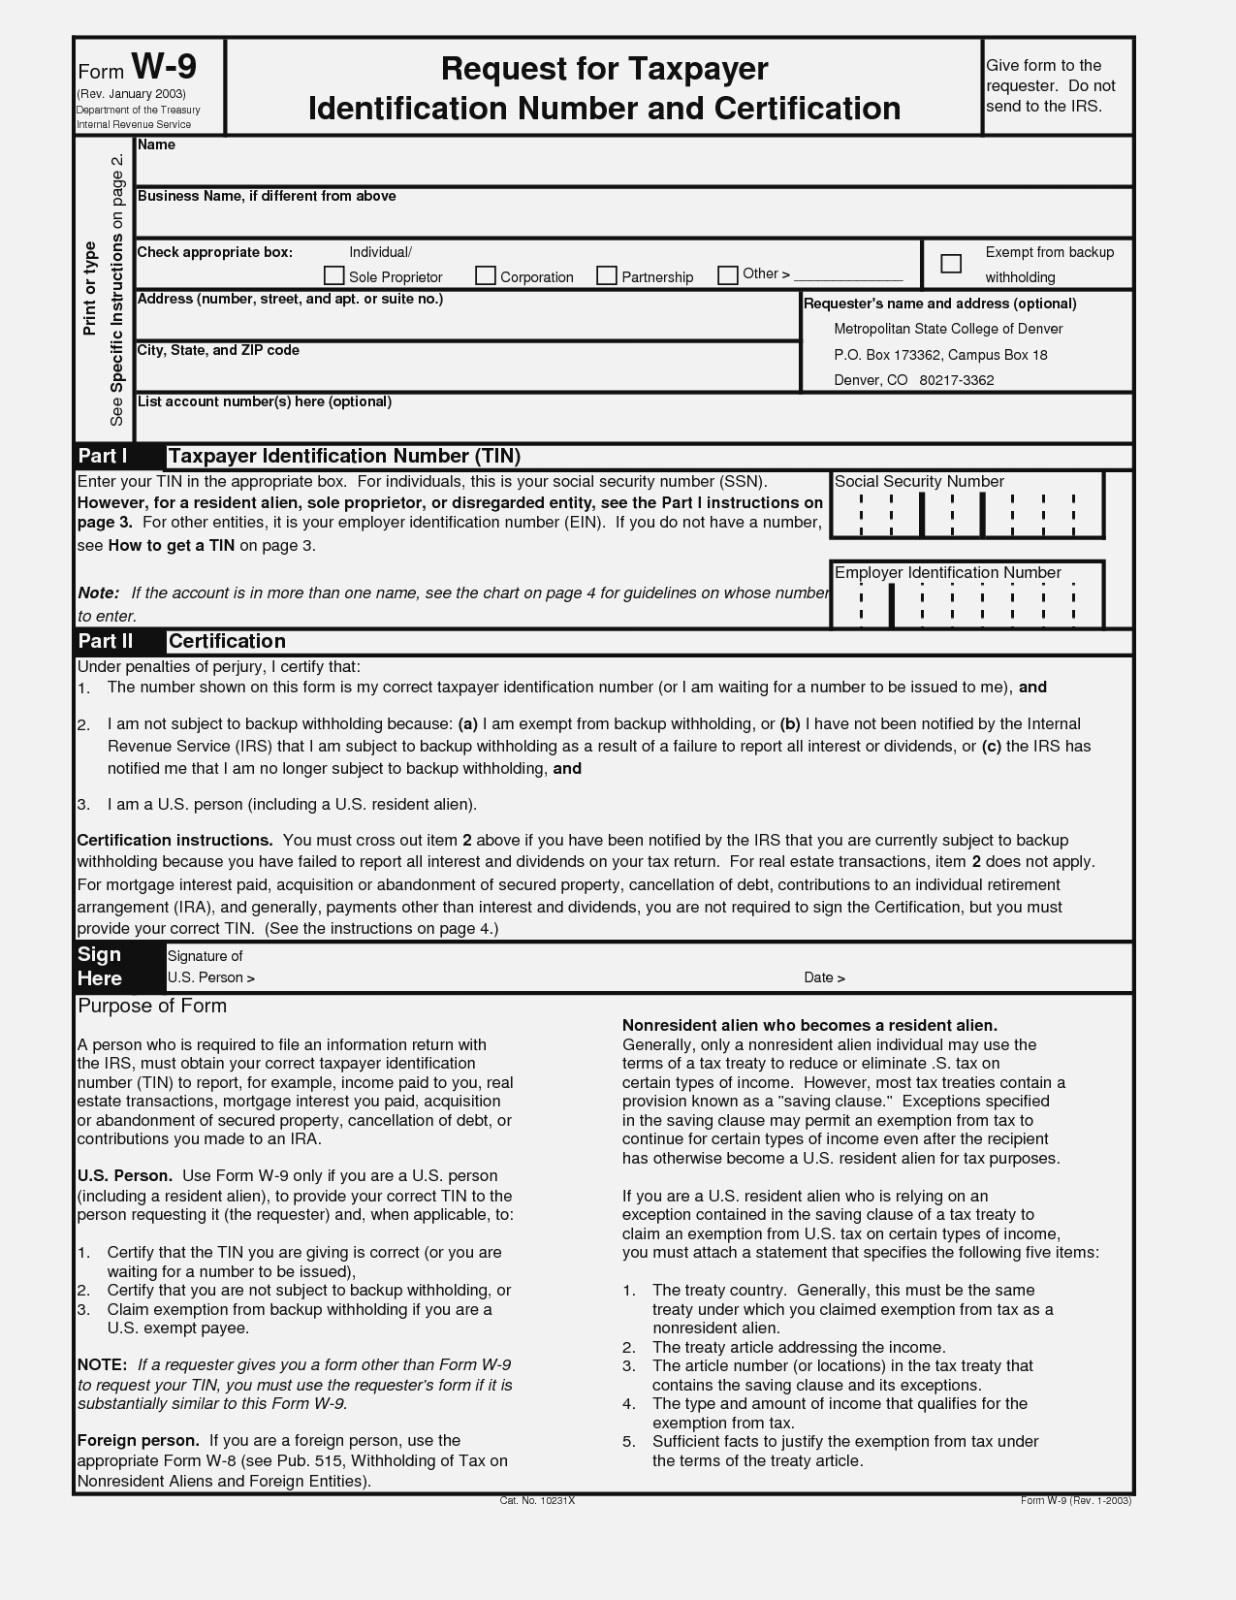 Why Is Everyone Talking About   The Invoice And Form Template - W9 Form Printable 2017 Free